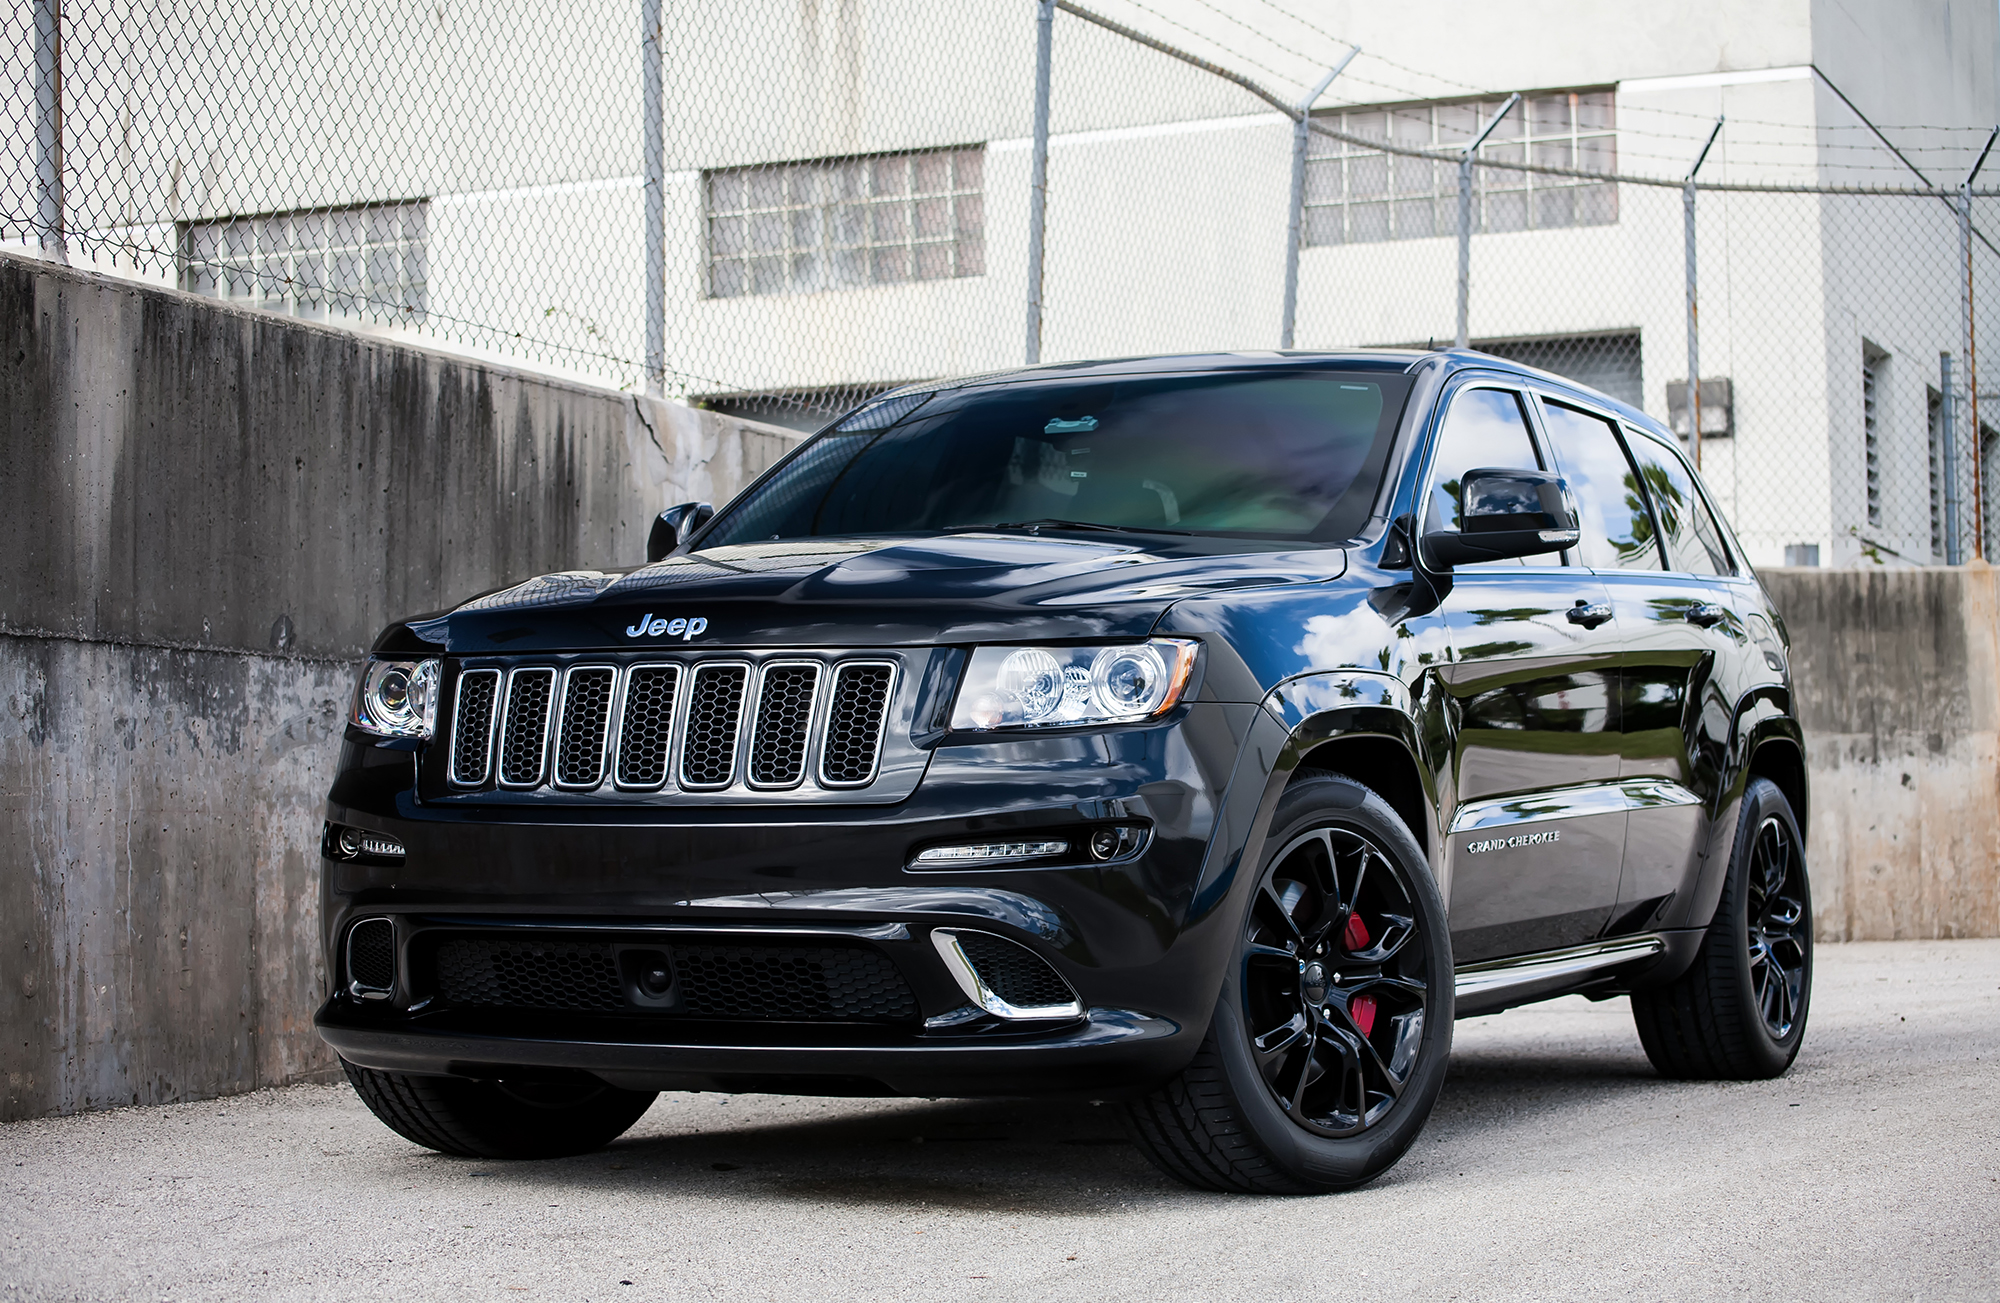 2019 jeep grand cherokee srt8 car photos catalog 2018. Black Bedroom Furniture Sets. Home Design Ideas